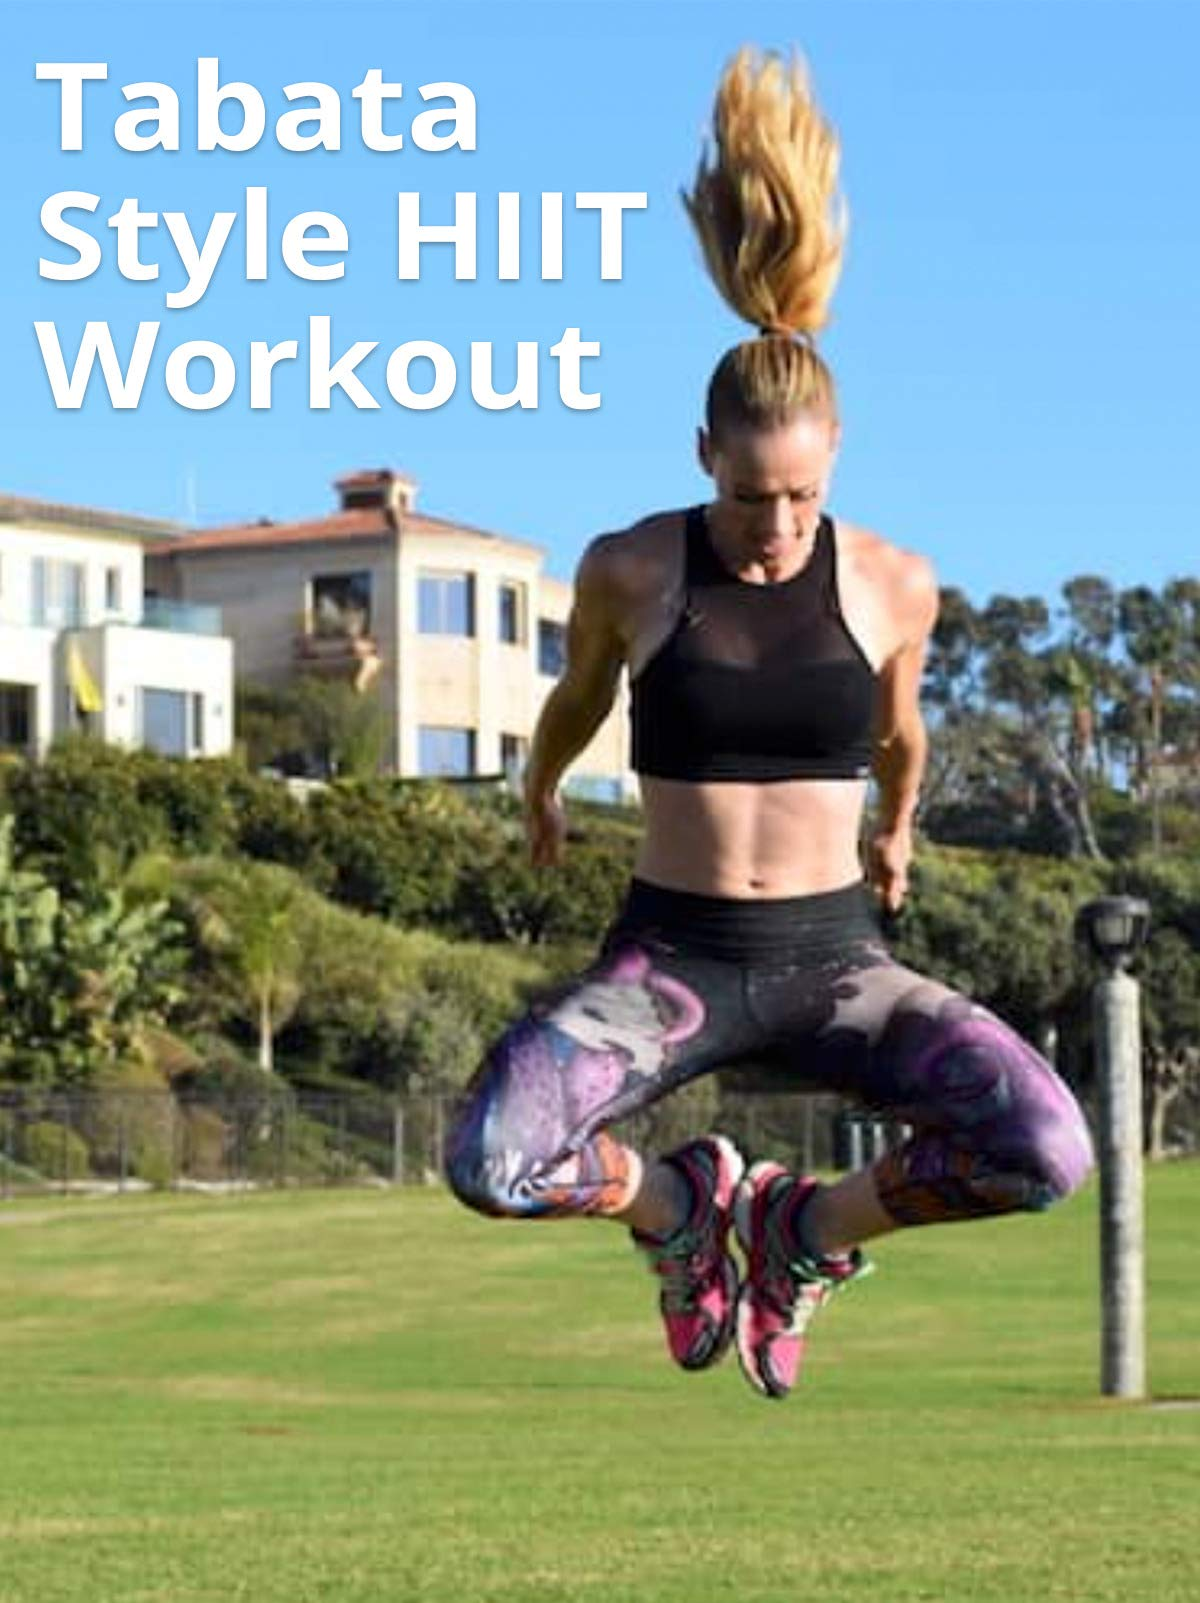 Tabata Style HIIT Workout